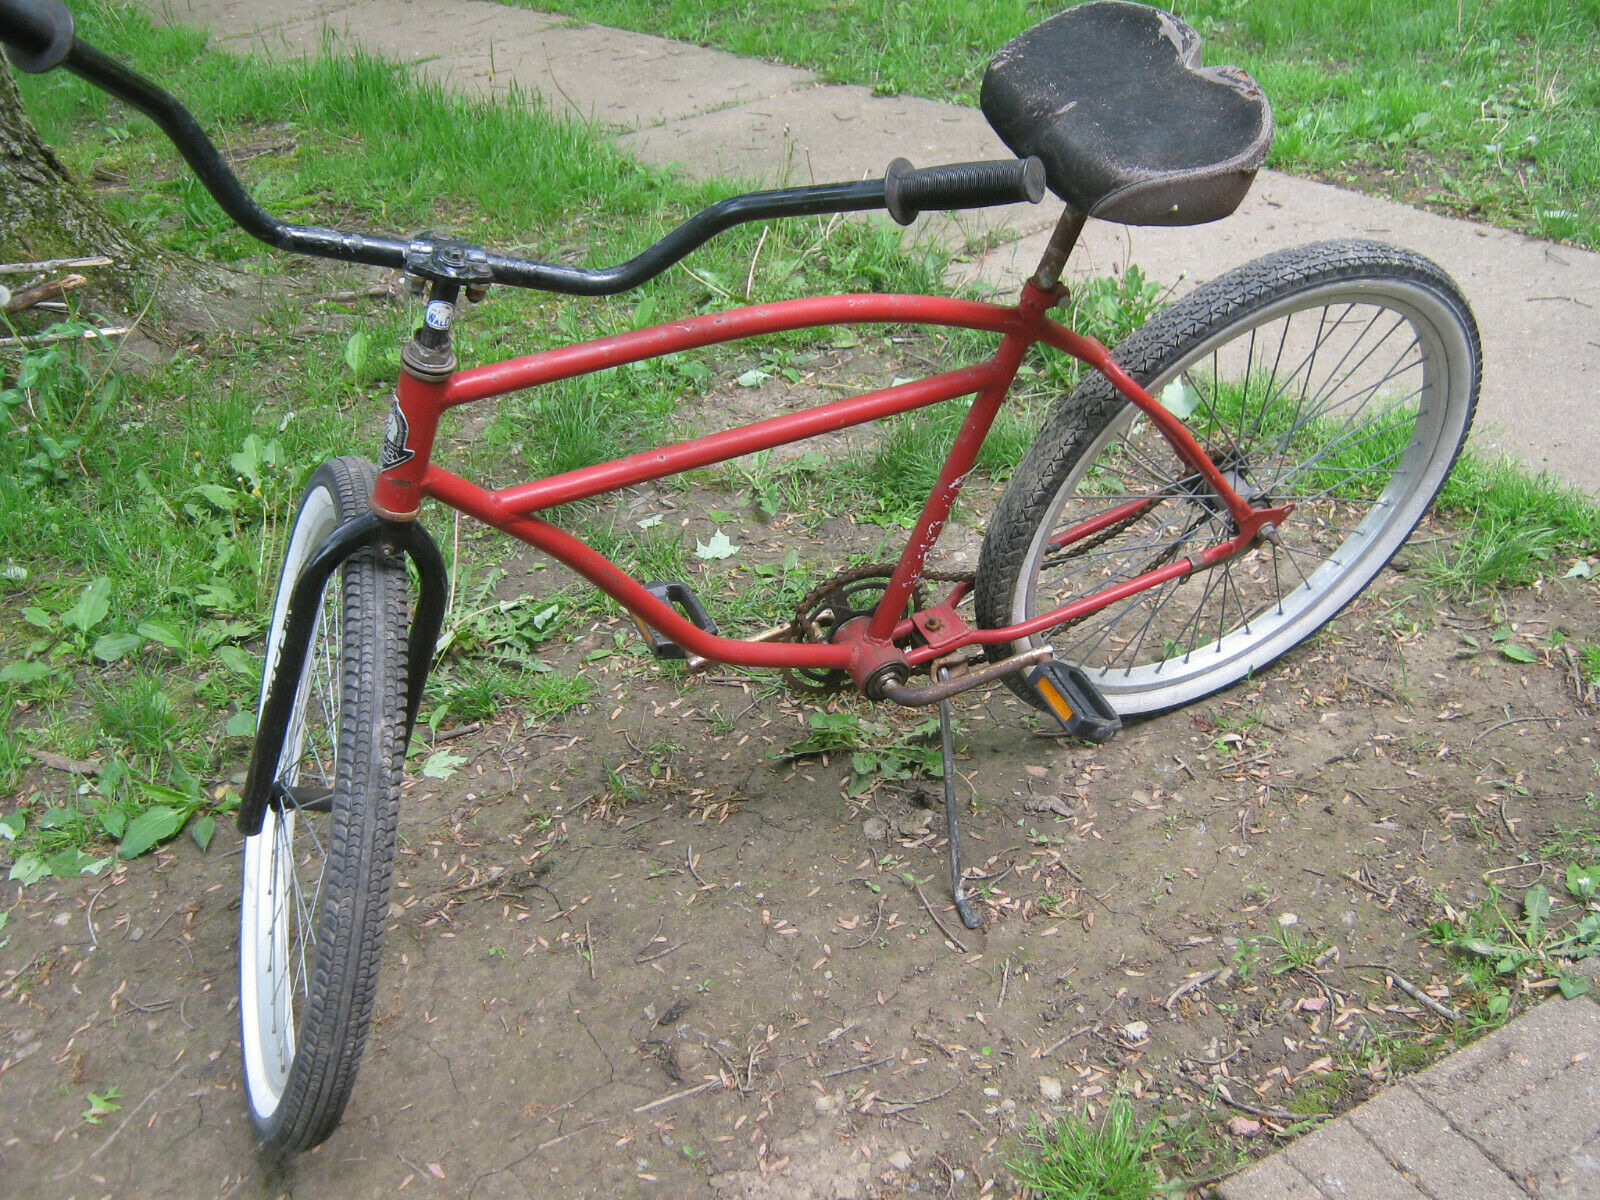 Emory  Men's Bicycle - Beach Cruiser Style - Made in USA  online-shop